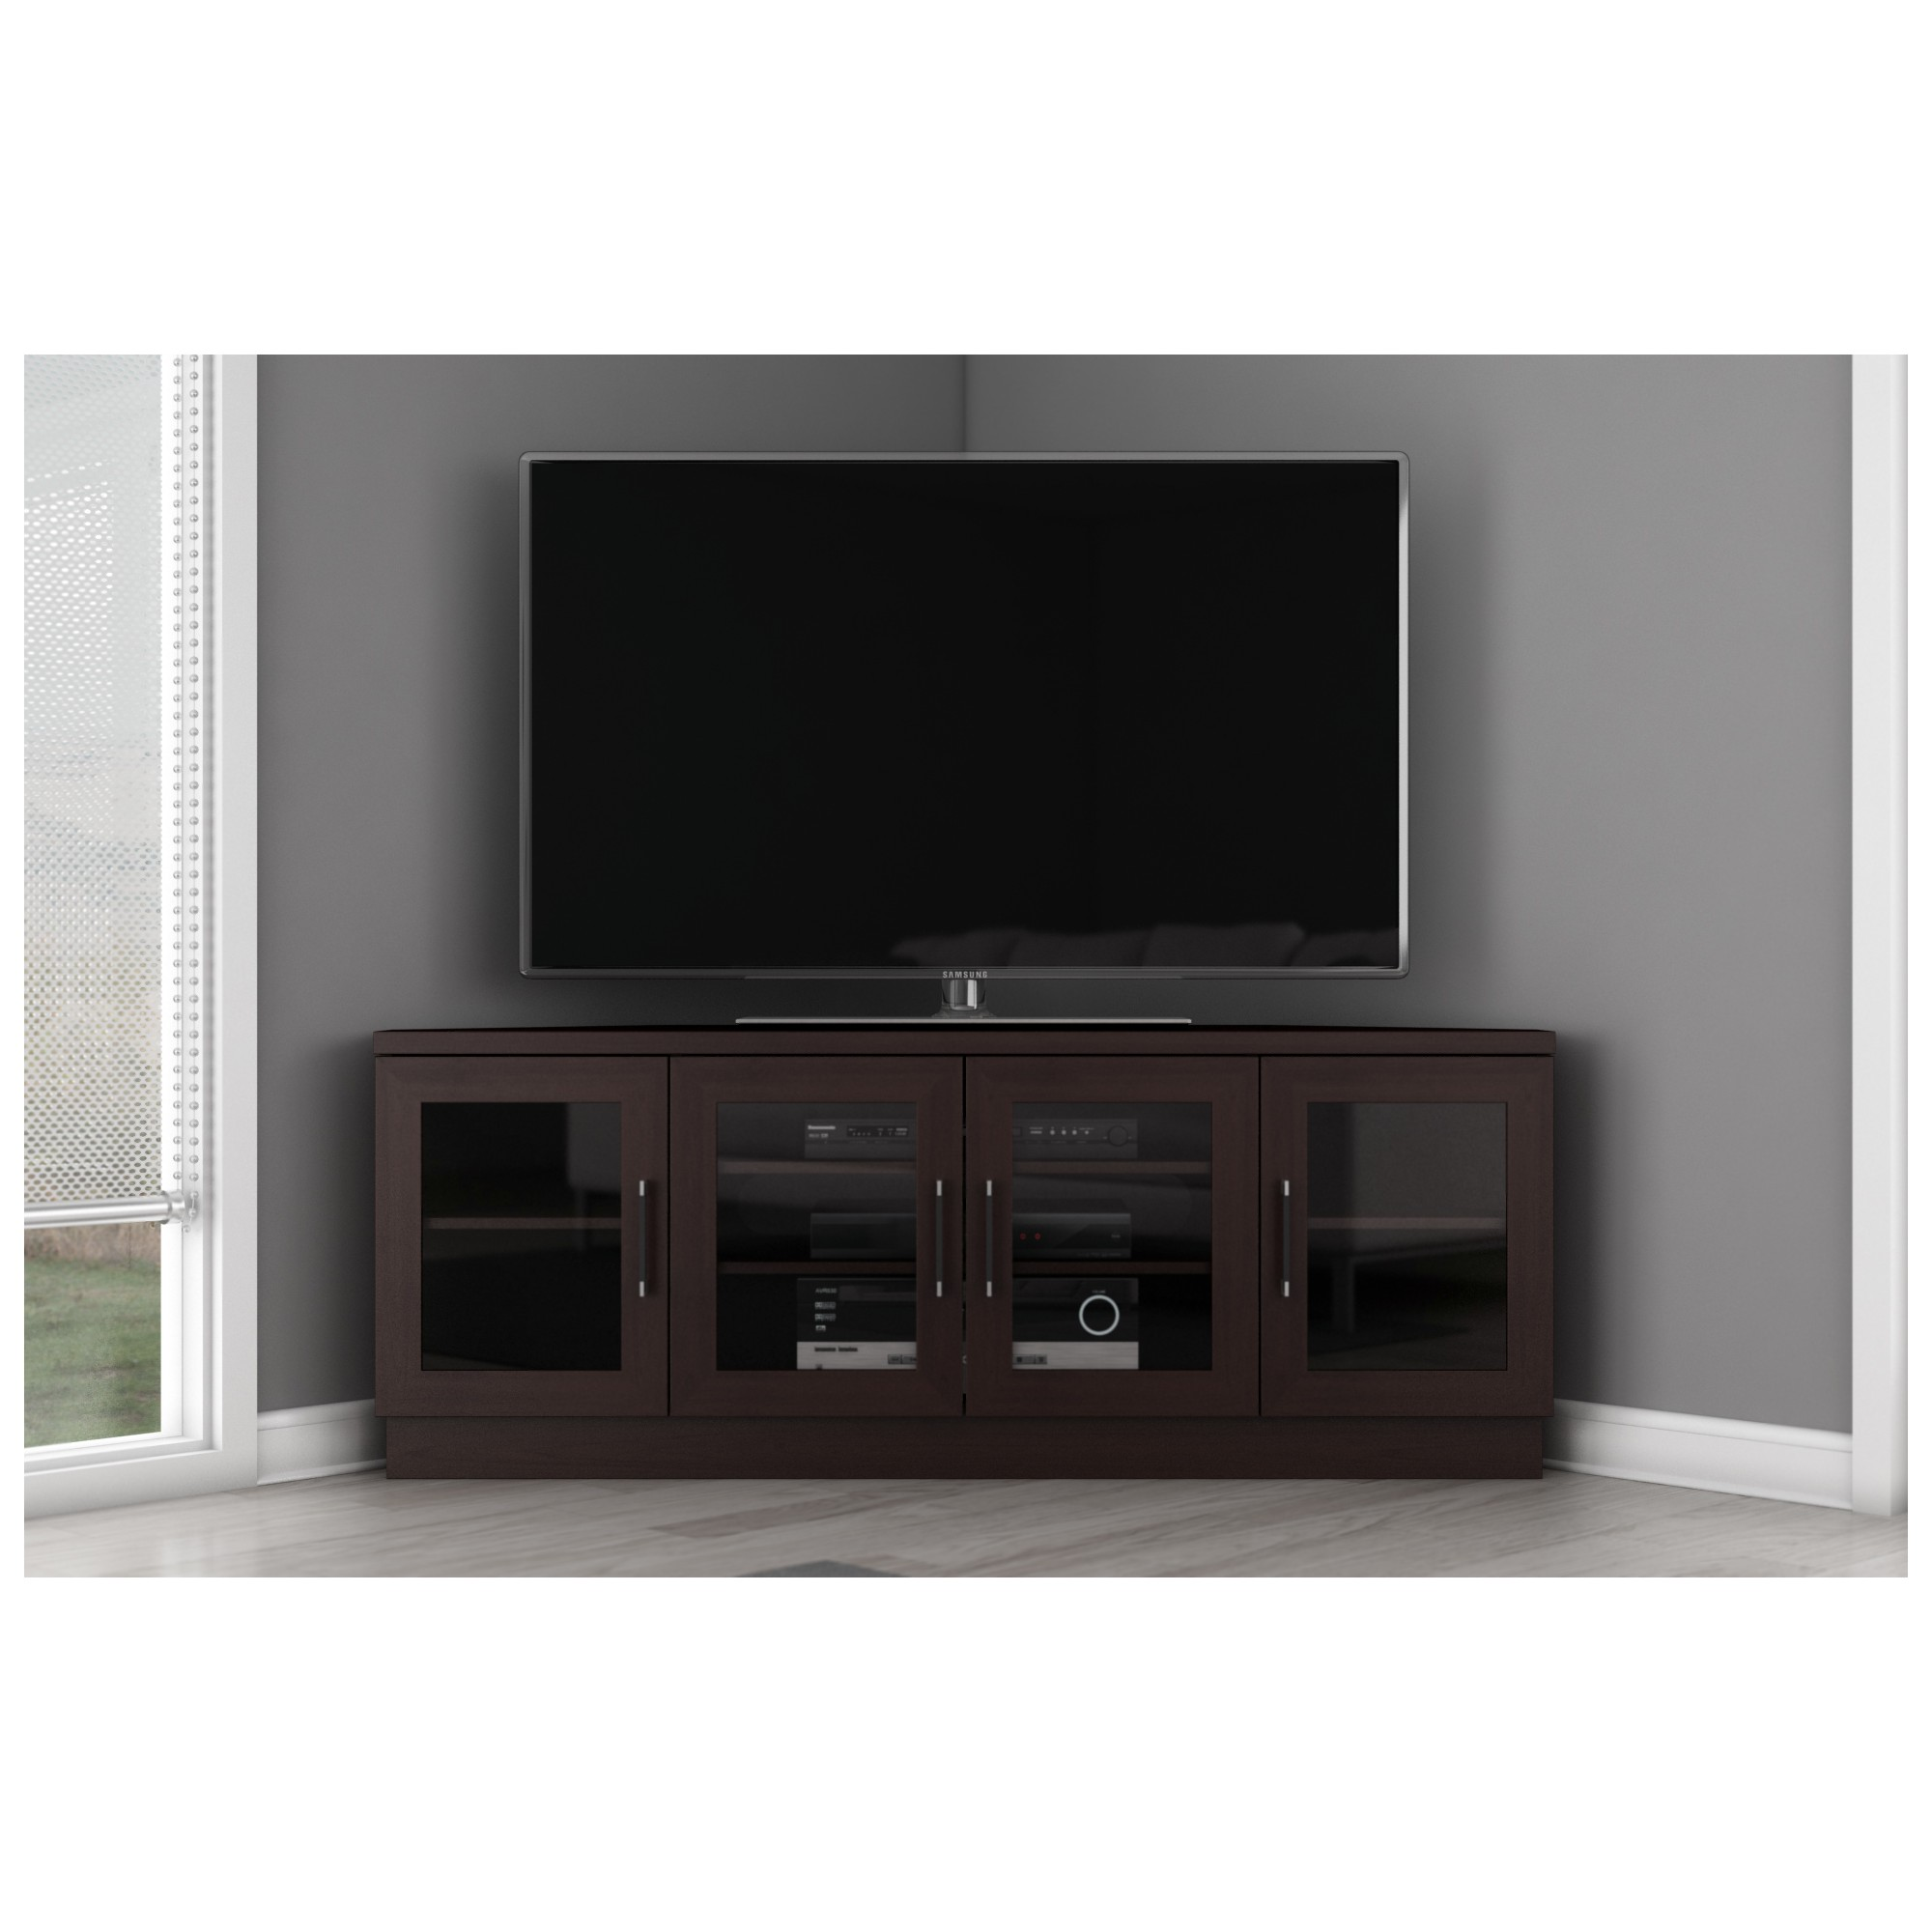 Furnitech Ft60cccw 60 Inch Tv Stand Contemporary Corner Wenge Contemporary Tv Stands Corner Tv Tv Stand